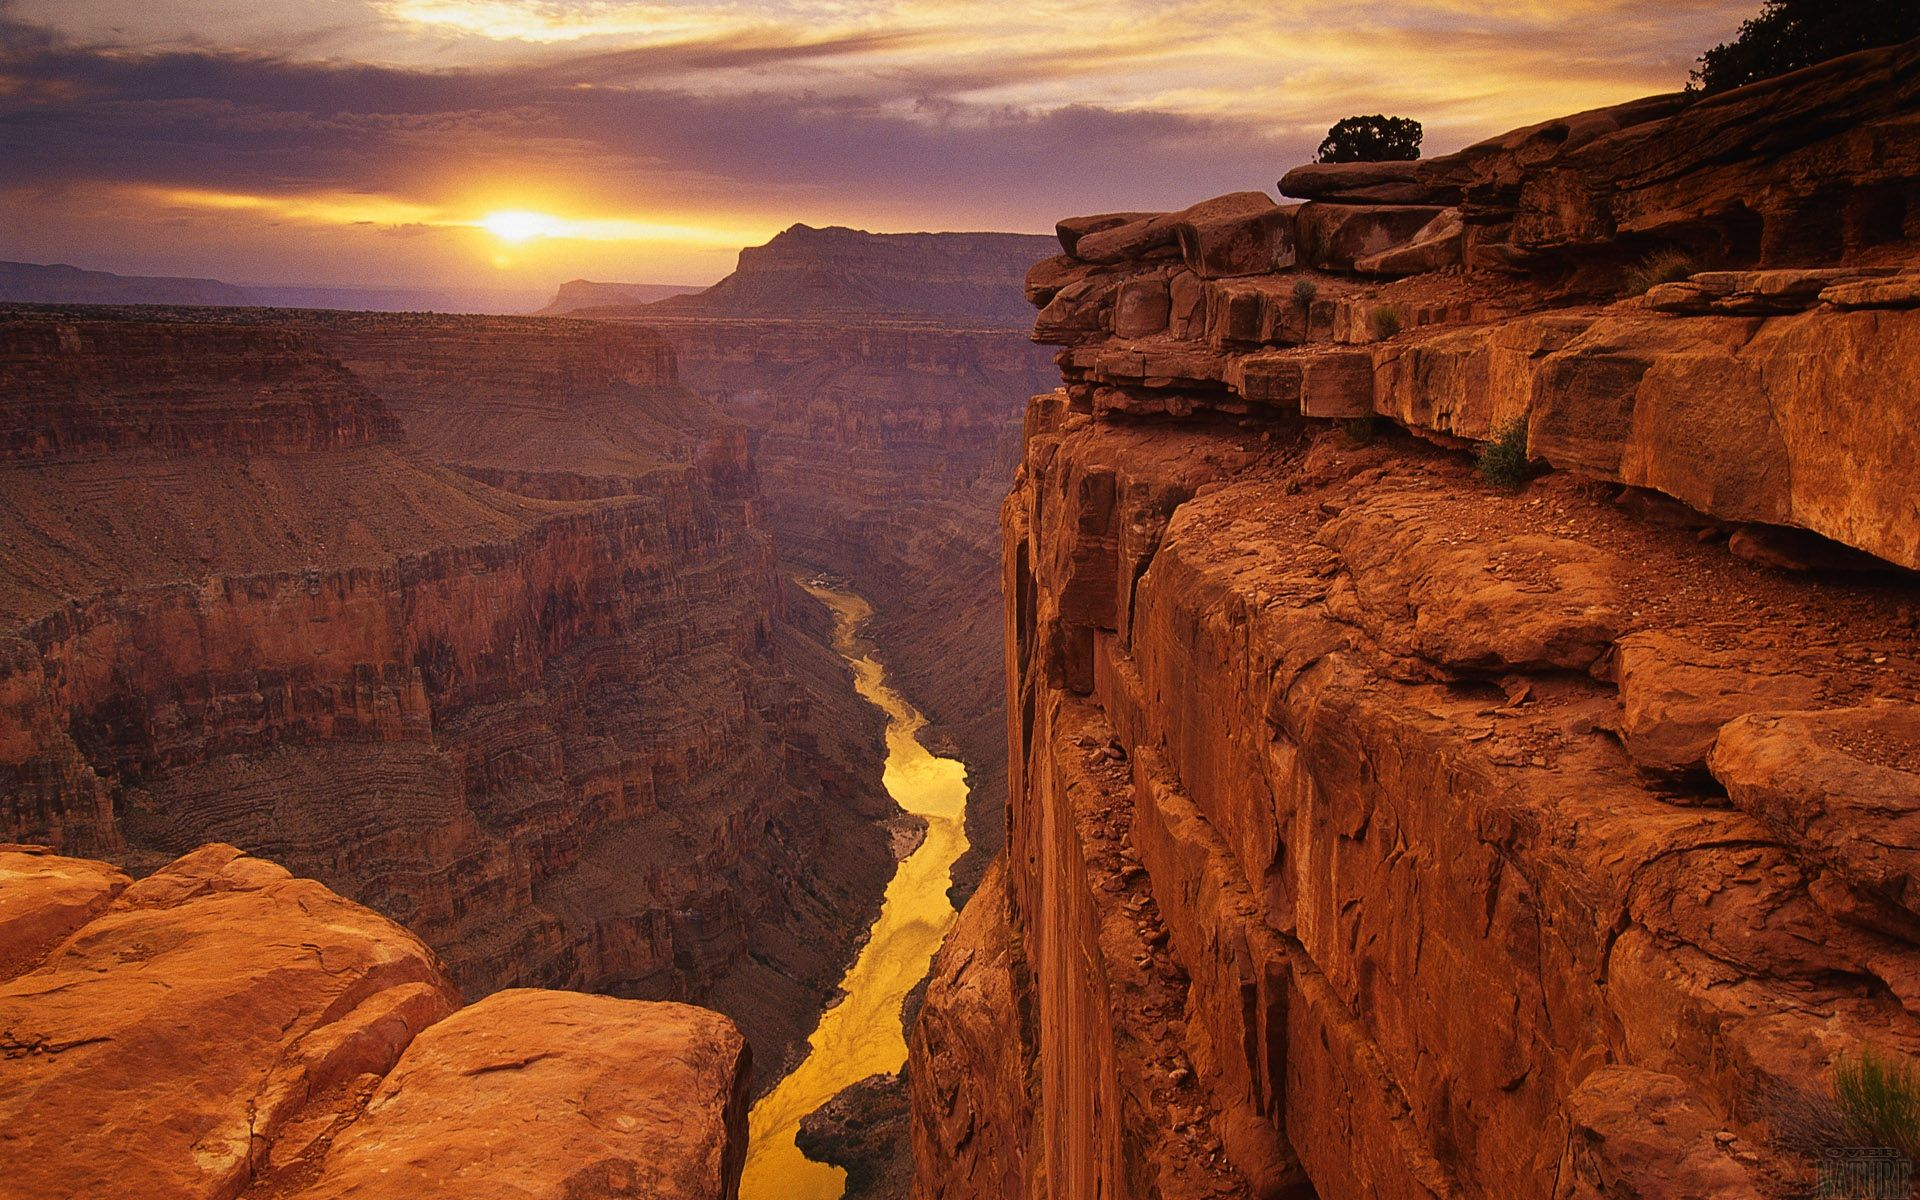 Colorado River in Grand Canyon